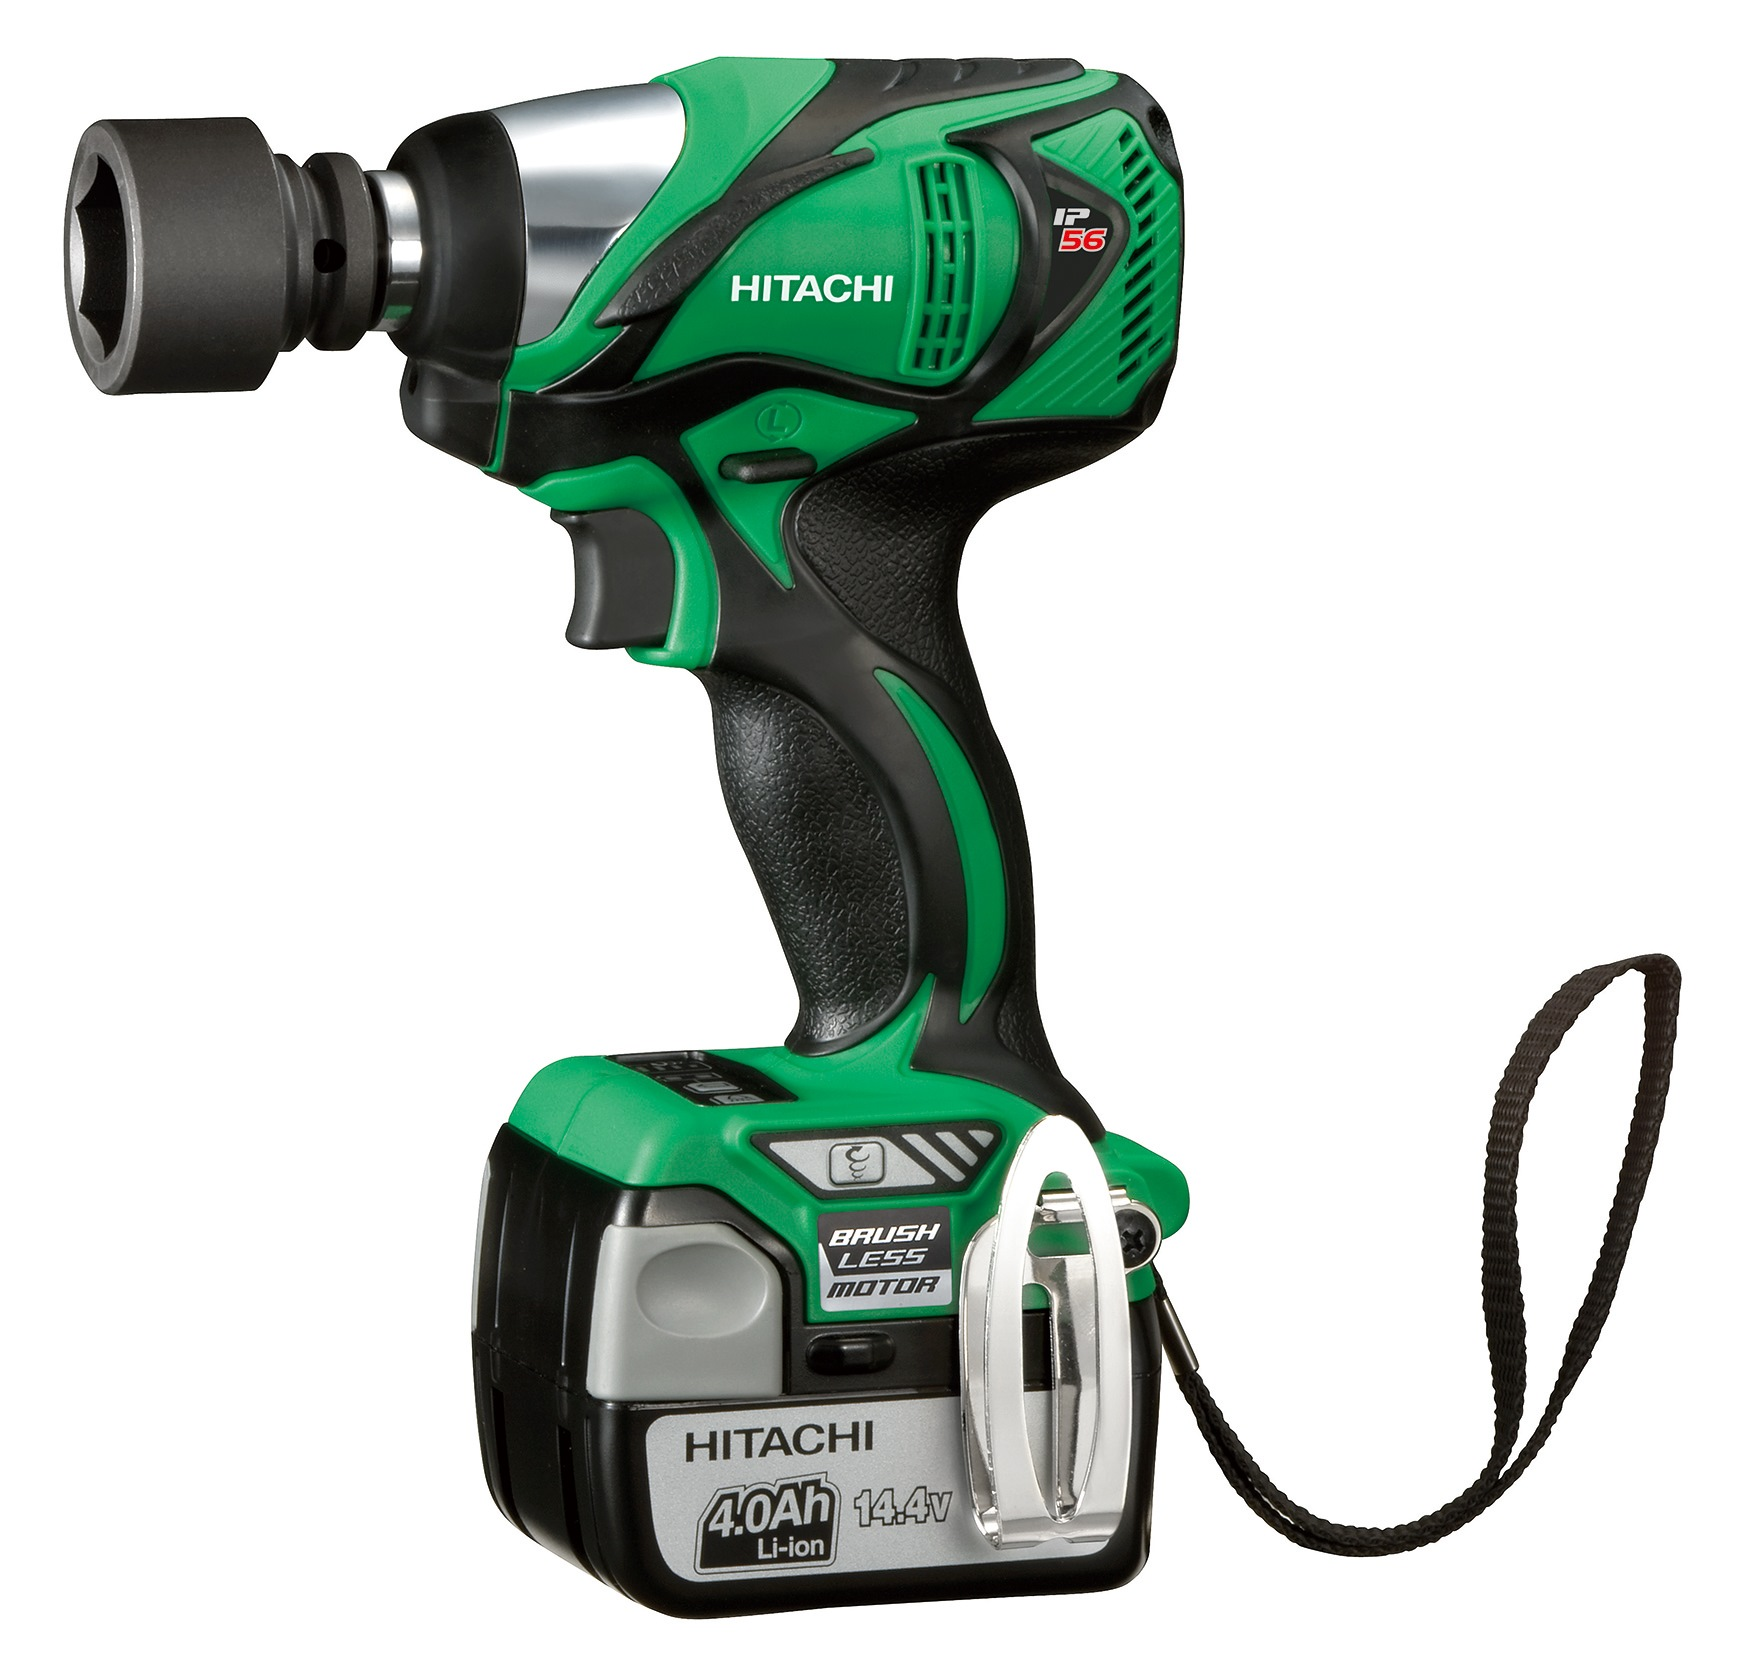 "HITACHI 1/2""DR 14.4V LI-ON IMPACT WRENCH, WR14DBAL2"